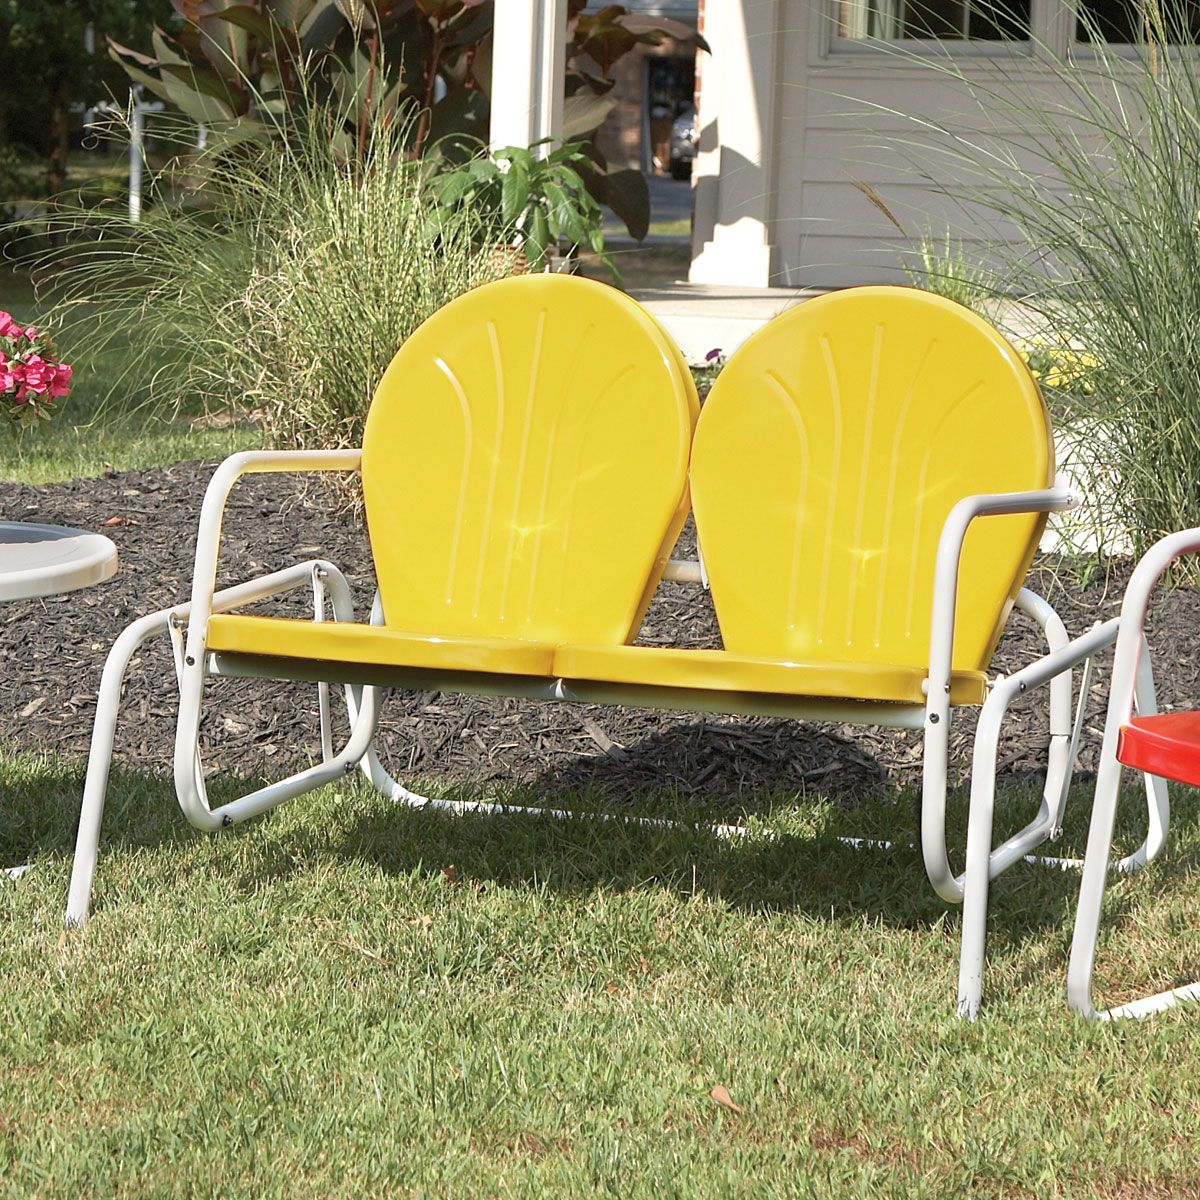 Retro Lawn Chairs Vintage Metal Chairs Outdoor Retro Metal Glider Lawn